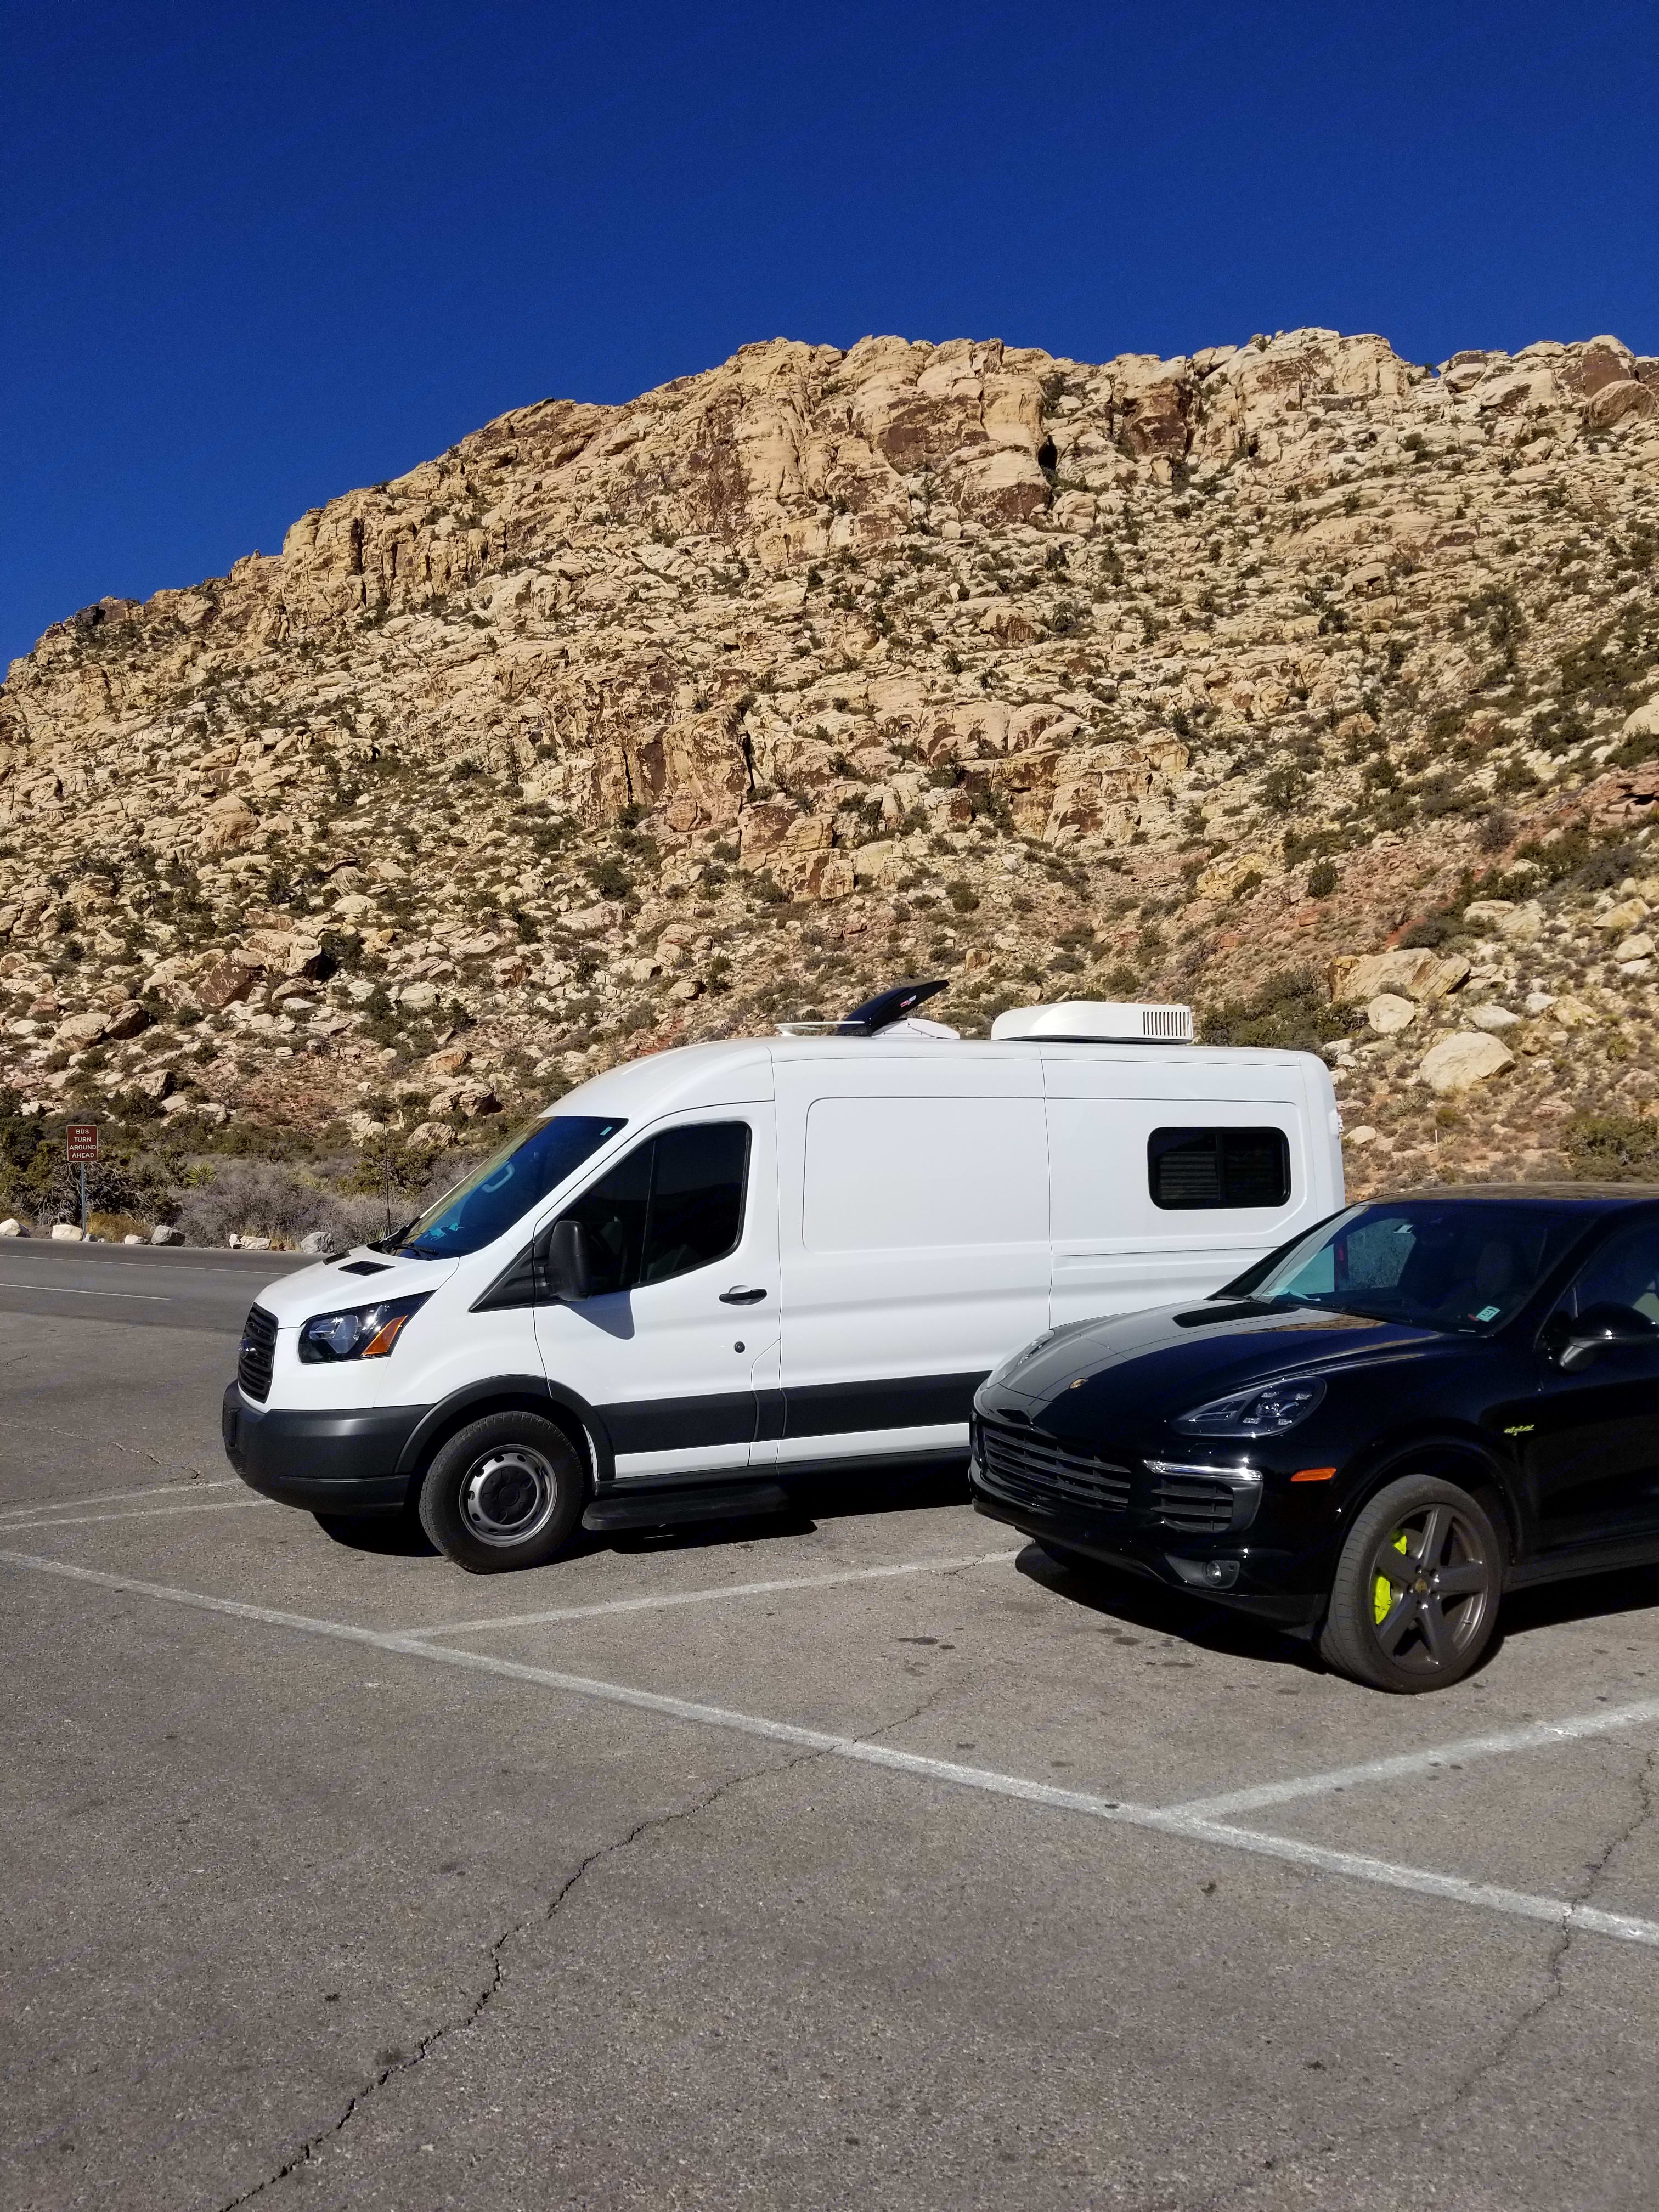 Easy to park in normal parking spaces. Ford Transit 2018